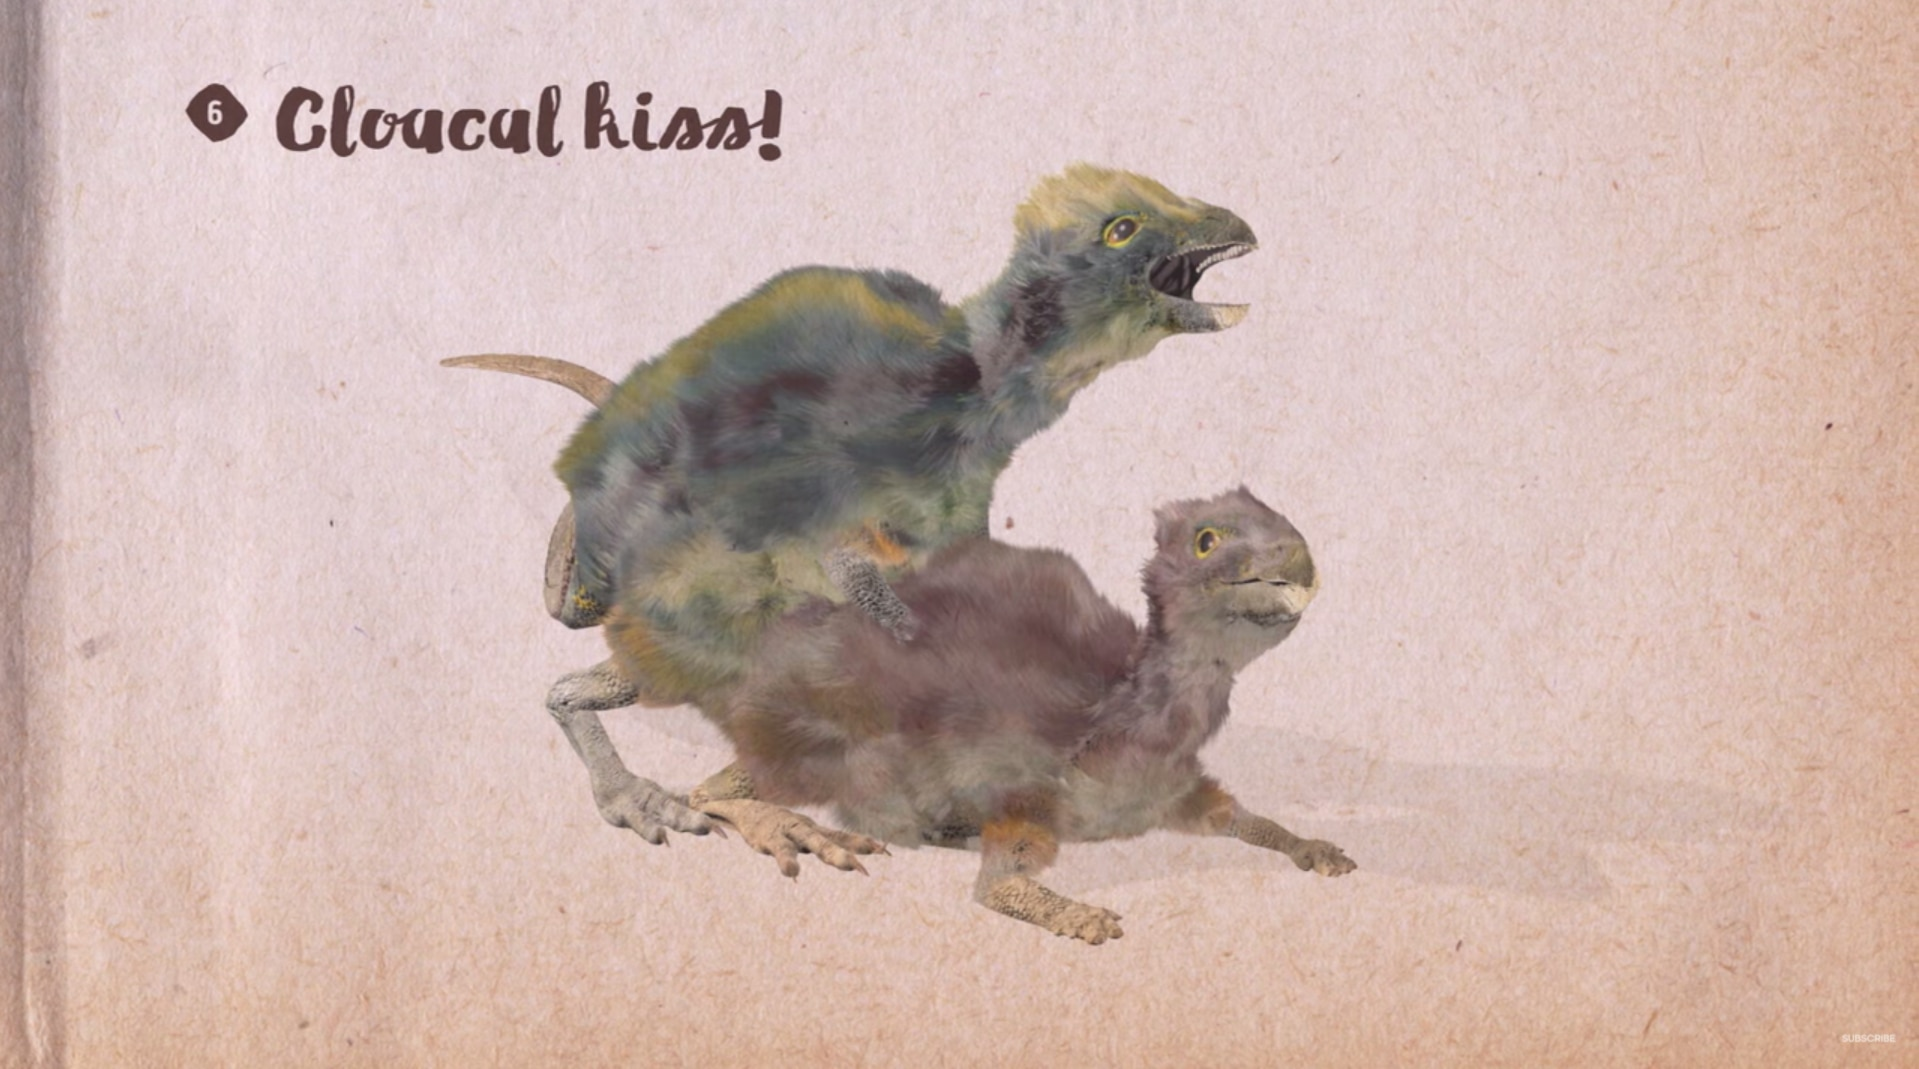 Two dinosaurs in the act of a cloacal kiss